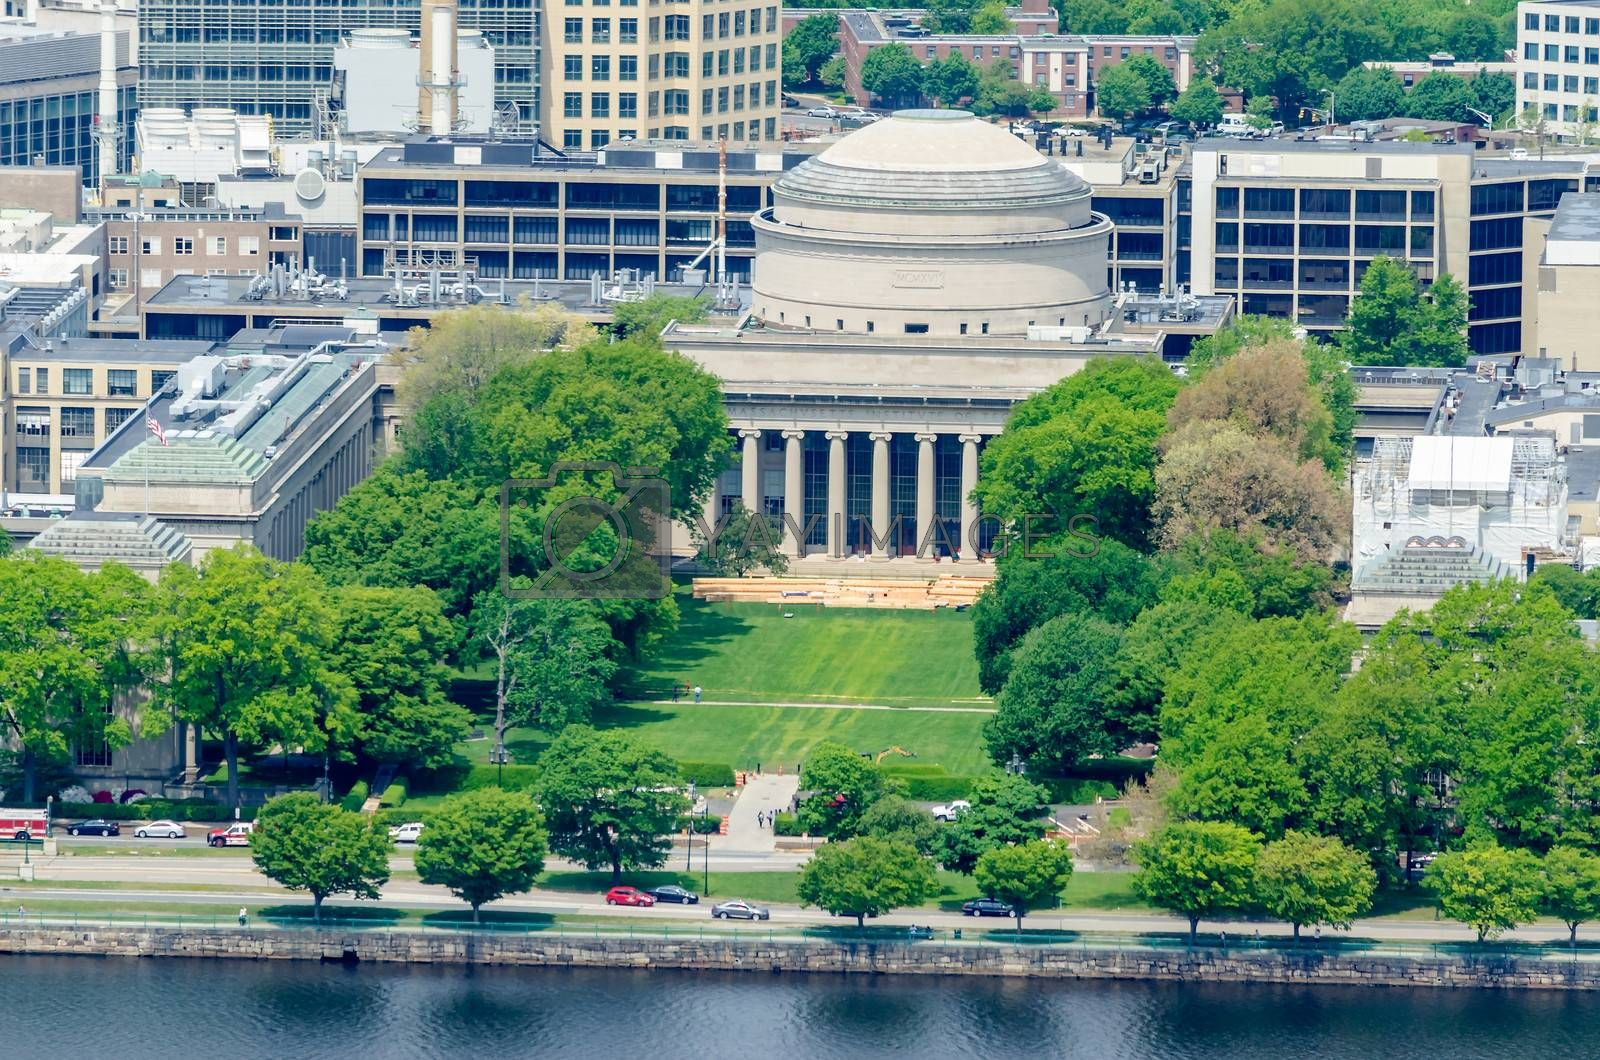 Boston Massachusetts Institute of Technology campus with trees and lawn aerial view with Charles River from Prudential Tower